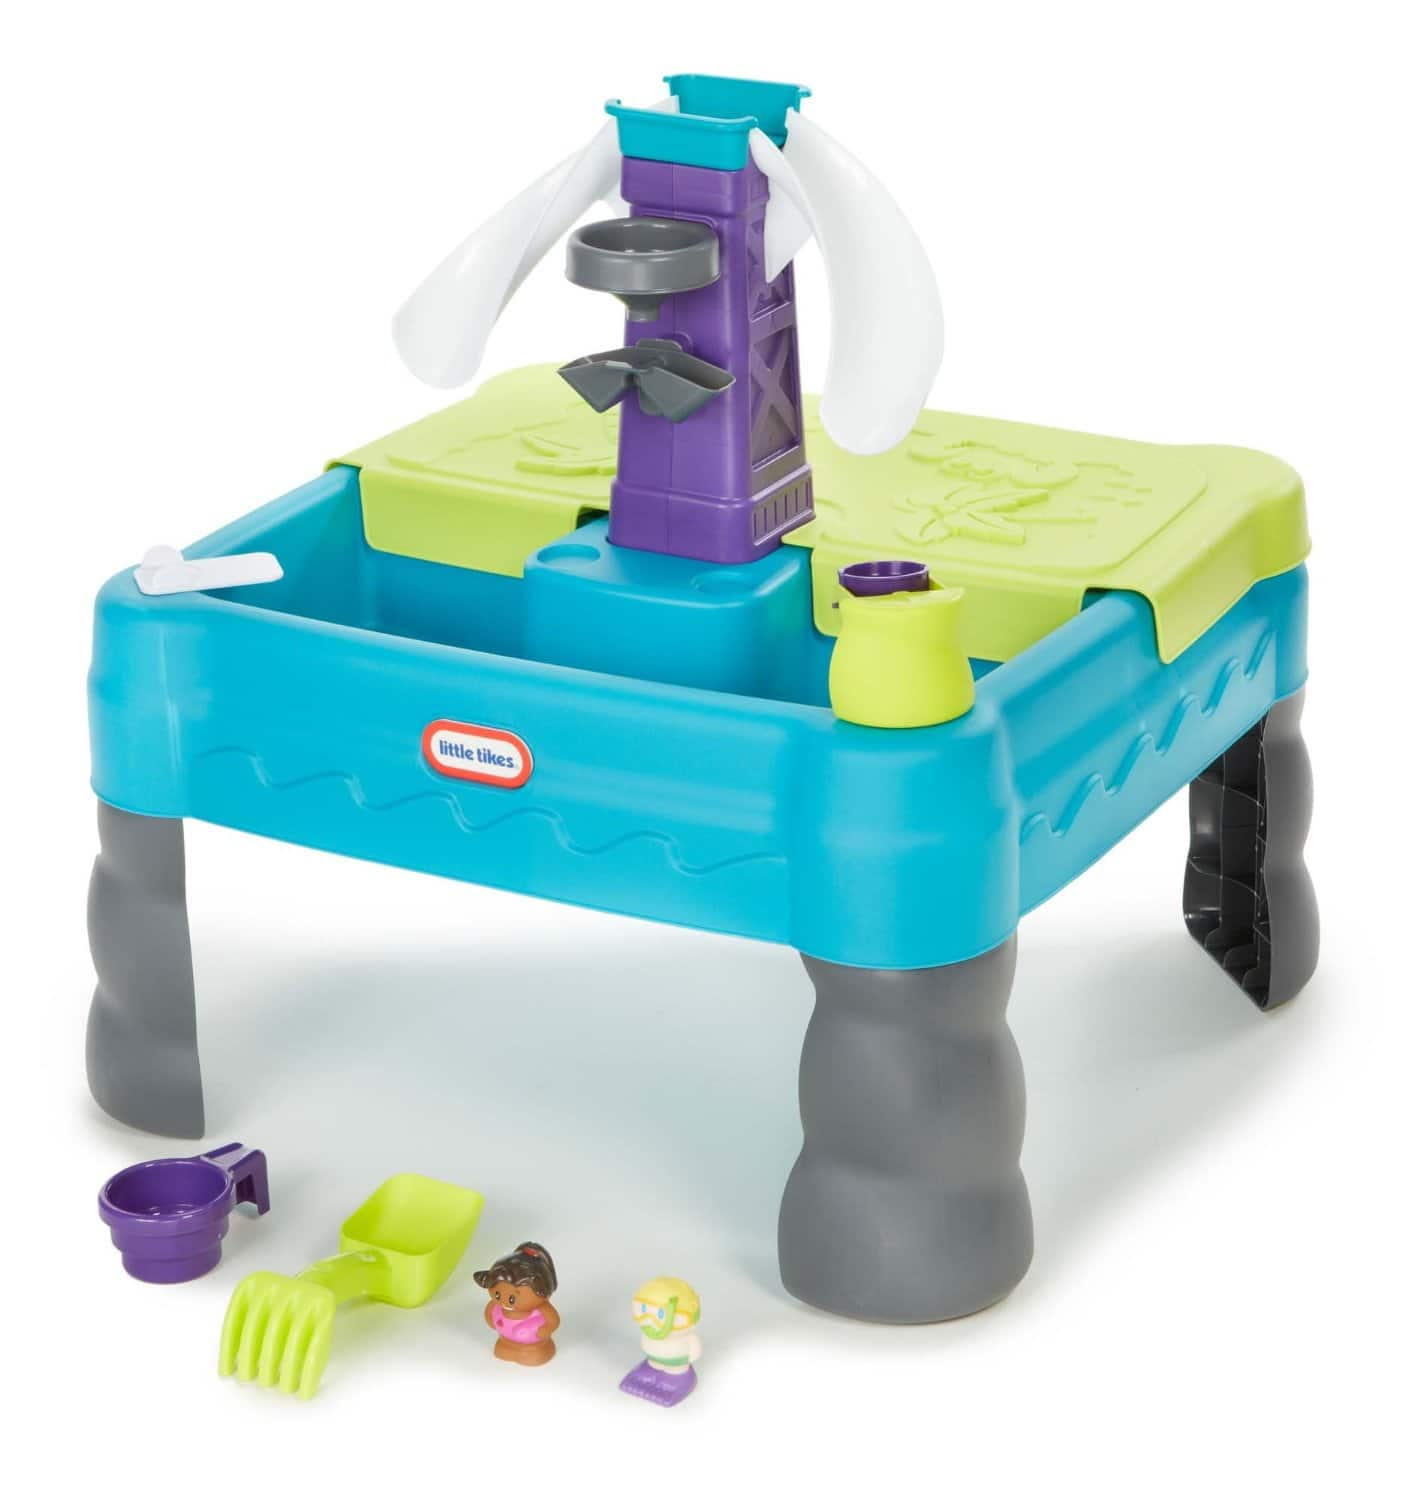 Little Tikes Sandy Lagoon Waterpark Play Table, Teal/Green $26.65 @ Amazon w/ Free Prime Shipping or @ $49